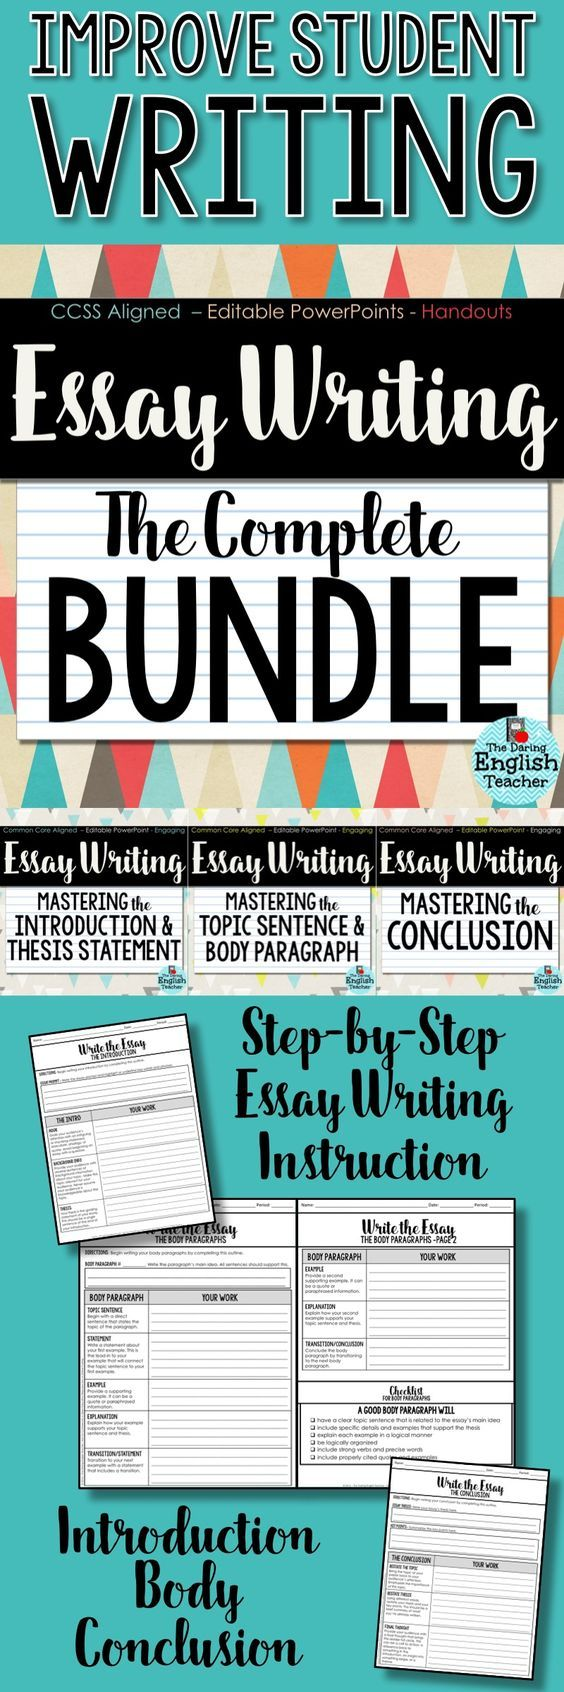 teaching aids for essay writing 22 teaching academic writing probably the most commonly labelled text type is the essay most students will have been taught a basic essay outline - introduction, body.